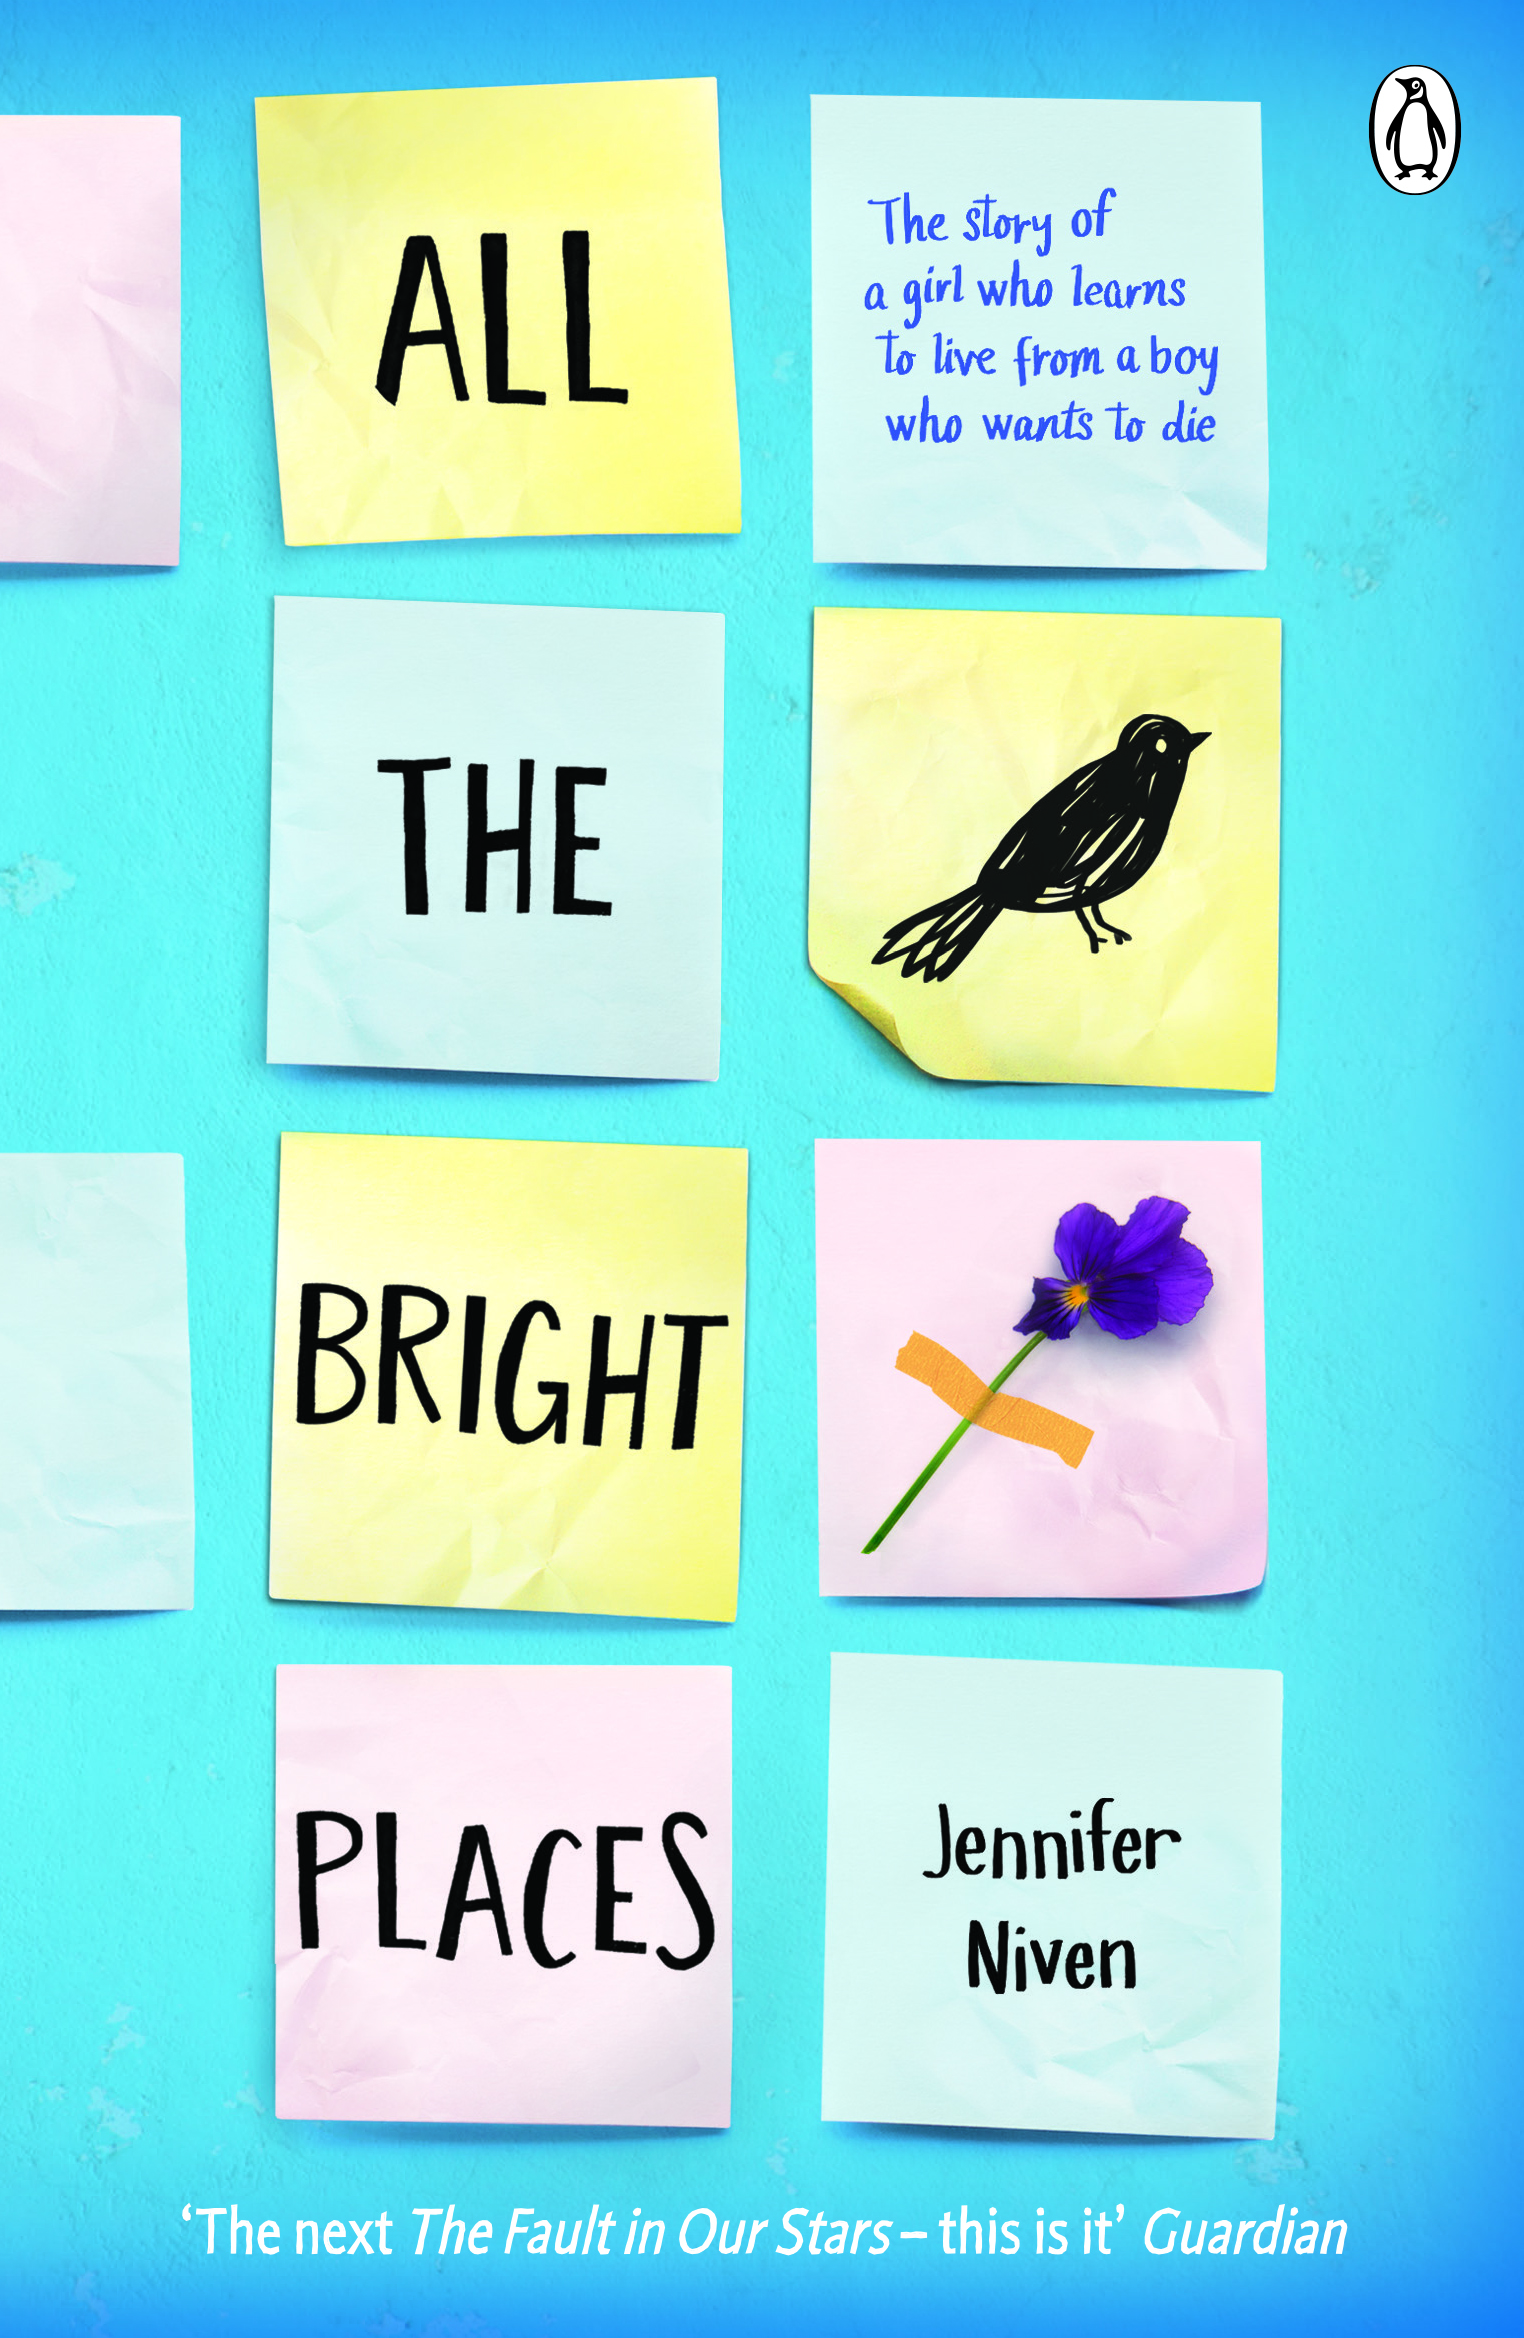 Cover Art for All the Bright Places, ISBN: 9780141357034